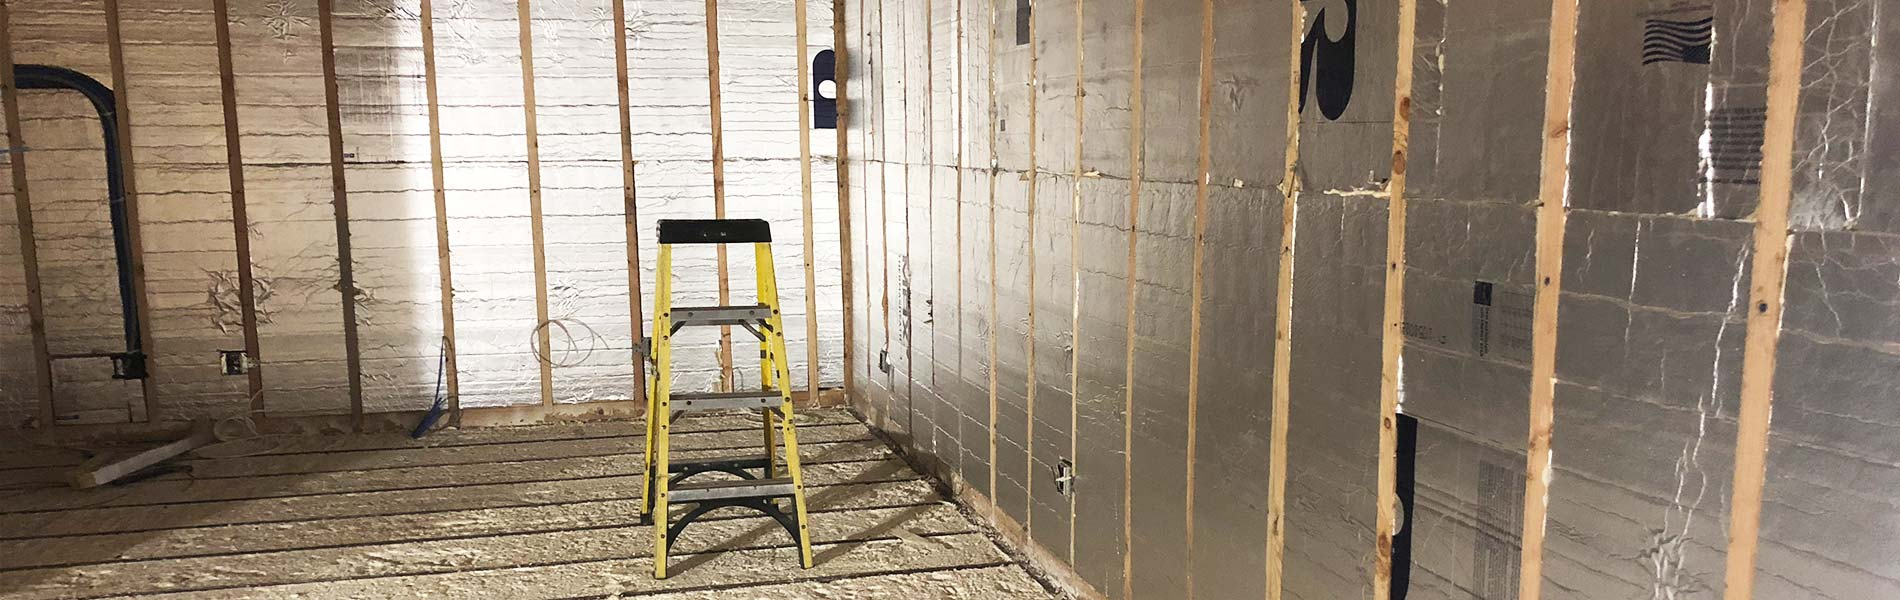 Residential Insulation Contractor in Northern California and